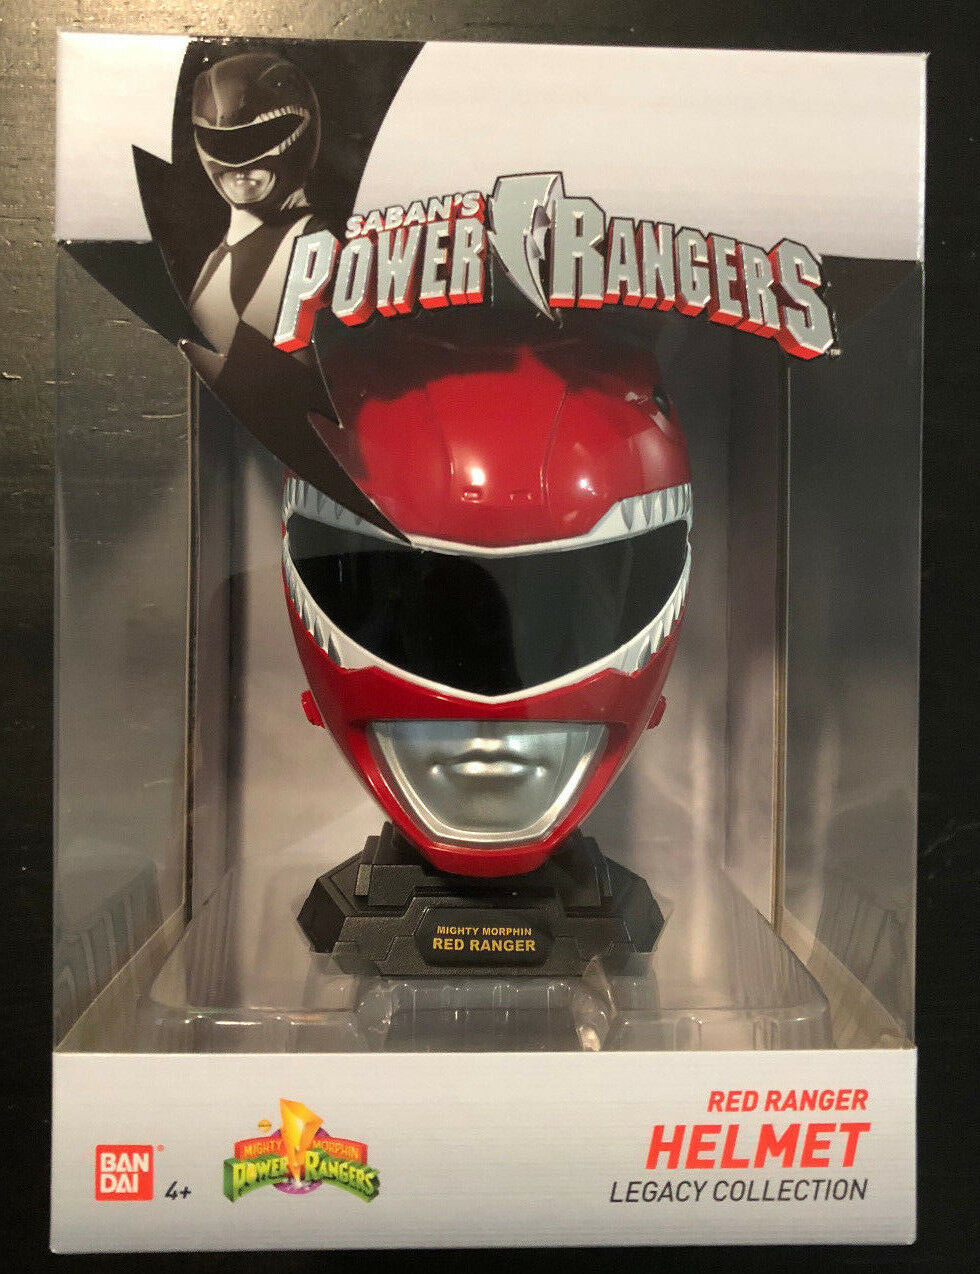 MIGHTY MORPHIN POWER RANGERS LEGACY ROT RANGER HELMET MINI 1:4 JASON MMPR 2018